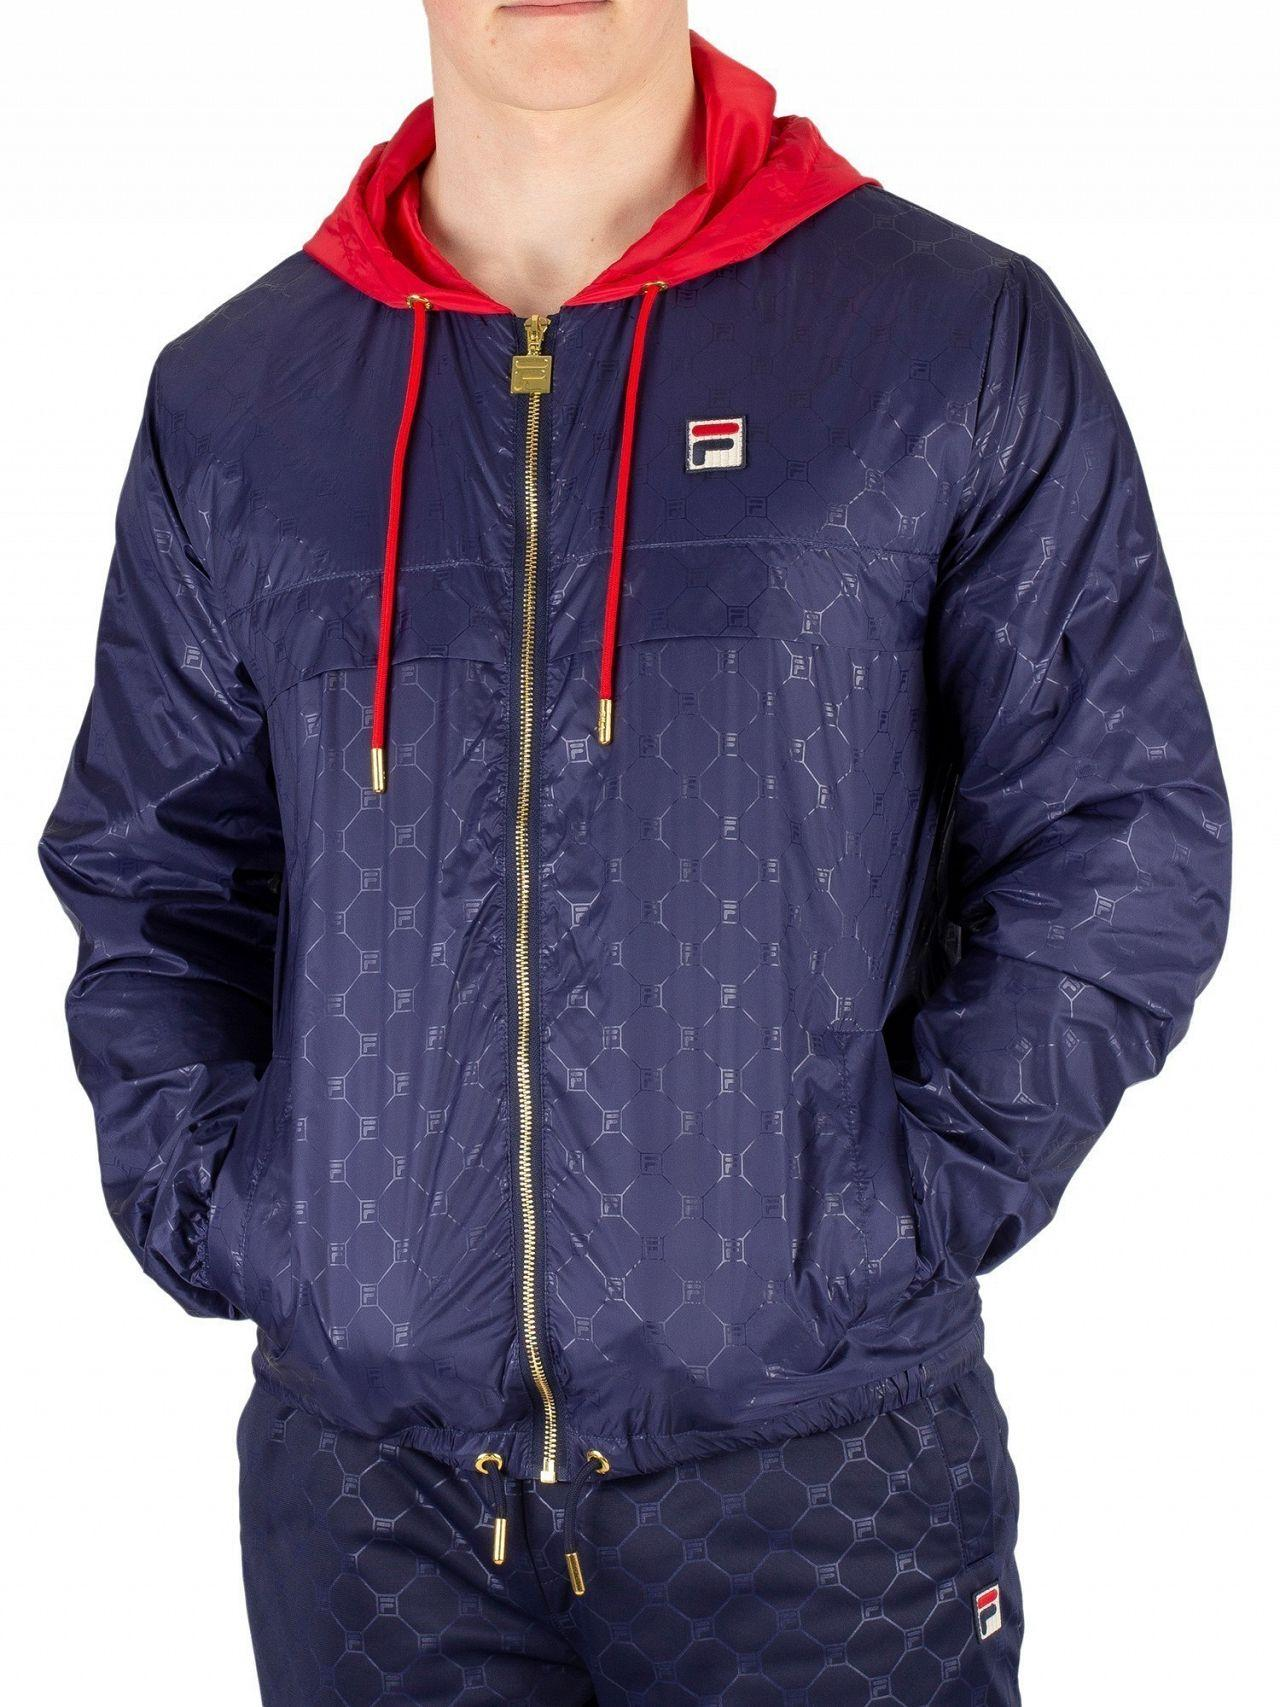 9560804e8 Fila Peacoat/red Copper Patterned Jacket in Red for Men - Lyst